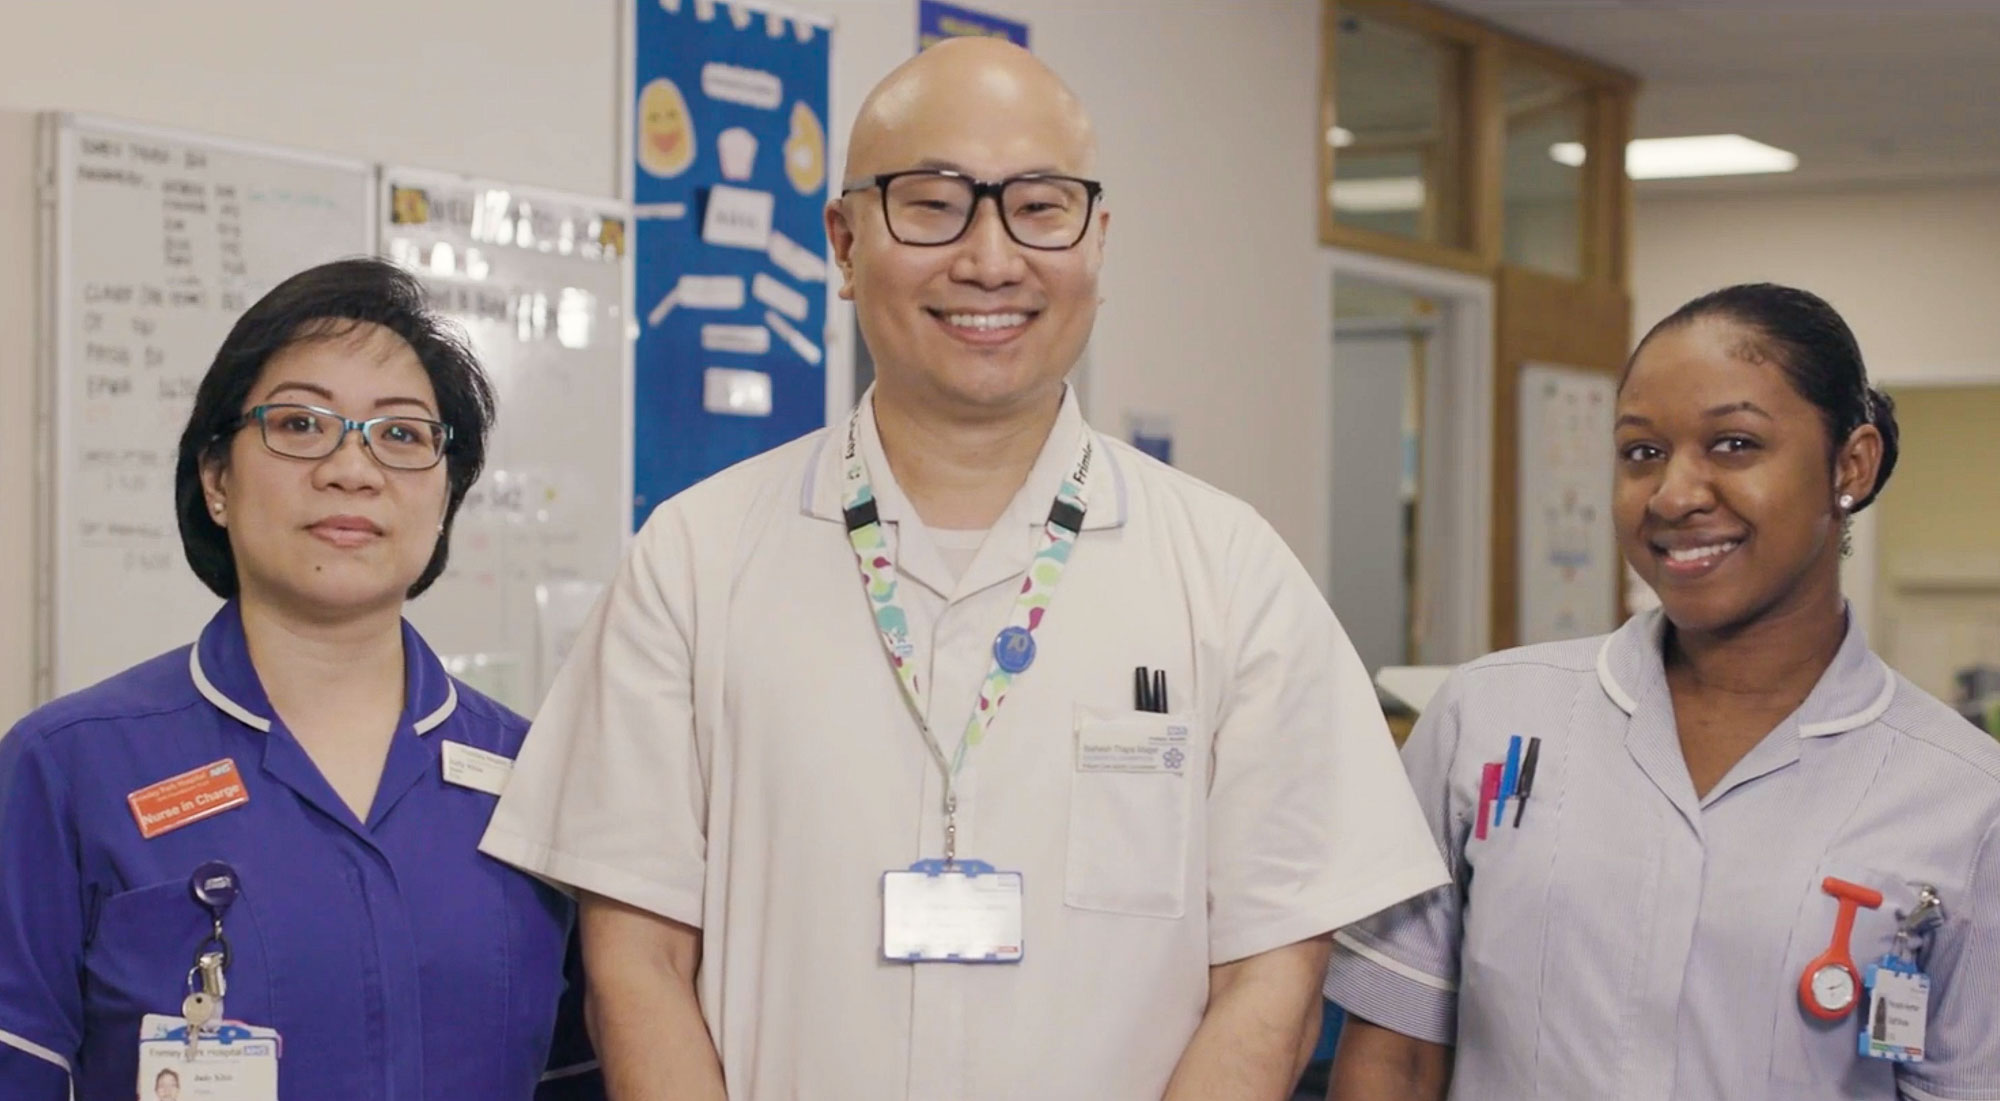 nhs staff video production | Magneto Films | London